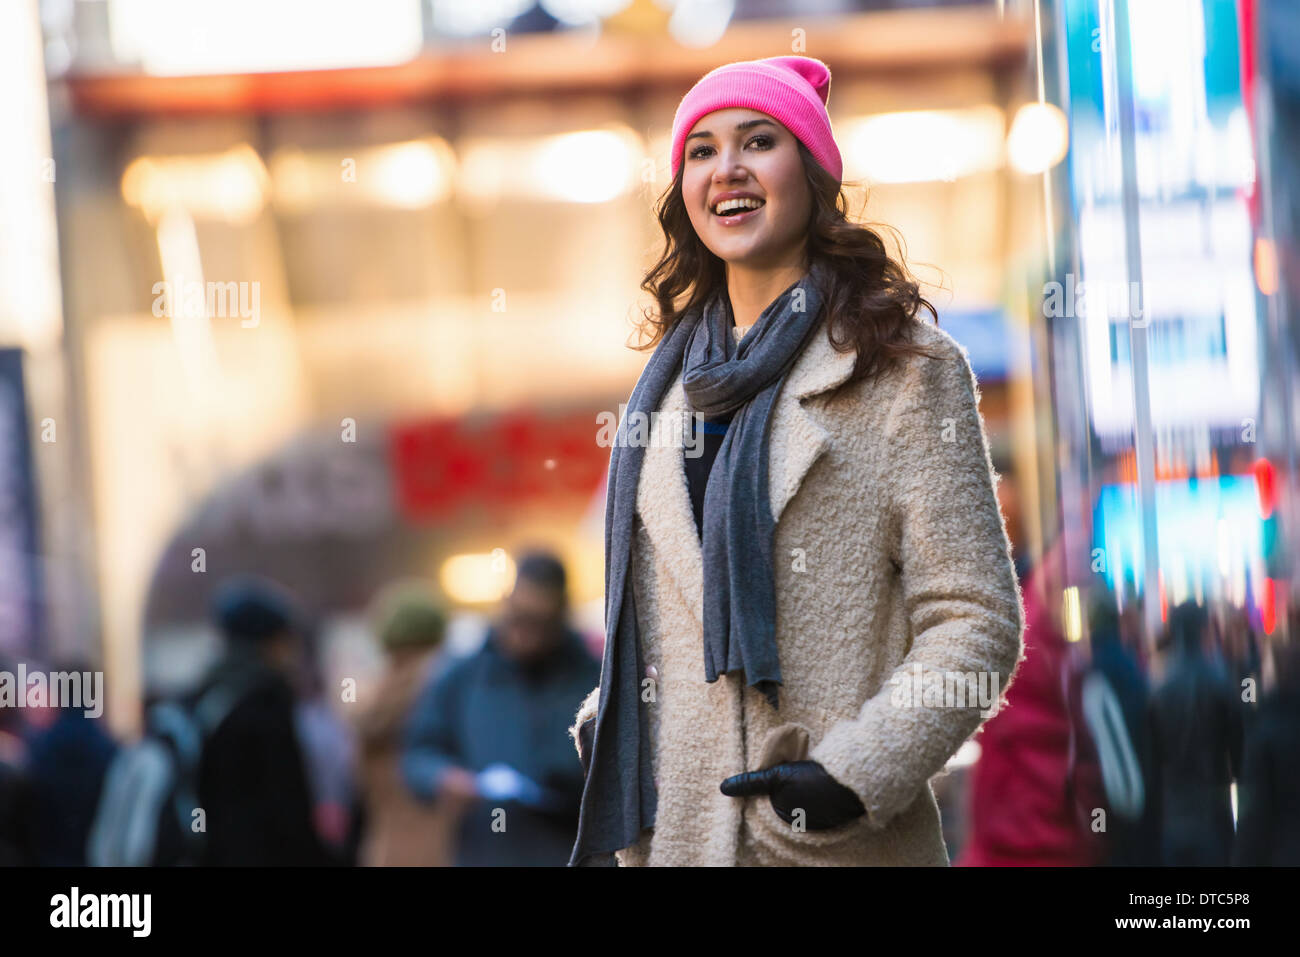 Young female tourist exploring streets, New York City, USA Stock Photo